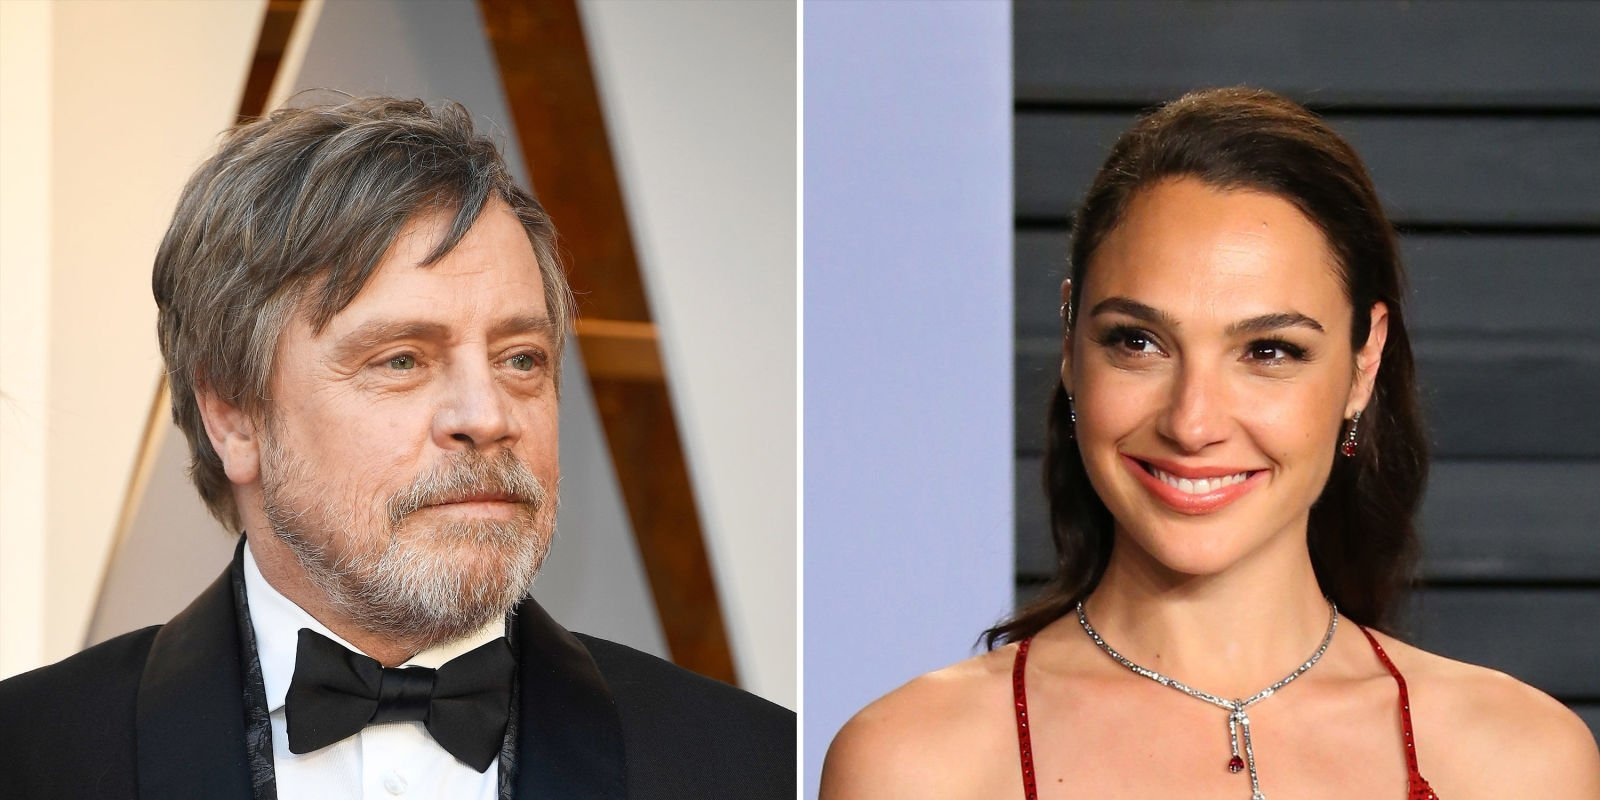 Wonder Woman met Luke Skywalker at the Oscars and fans are obsessed